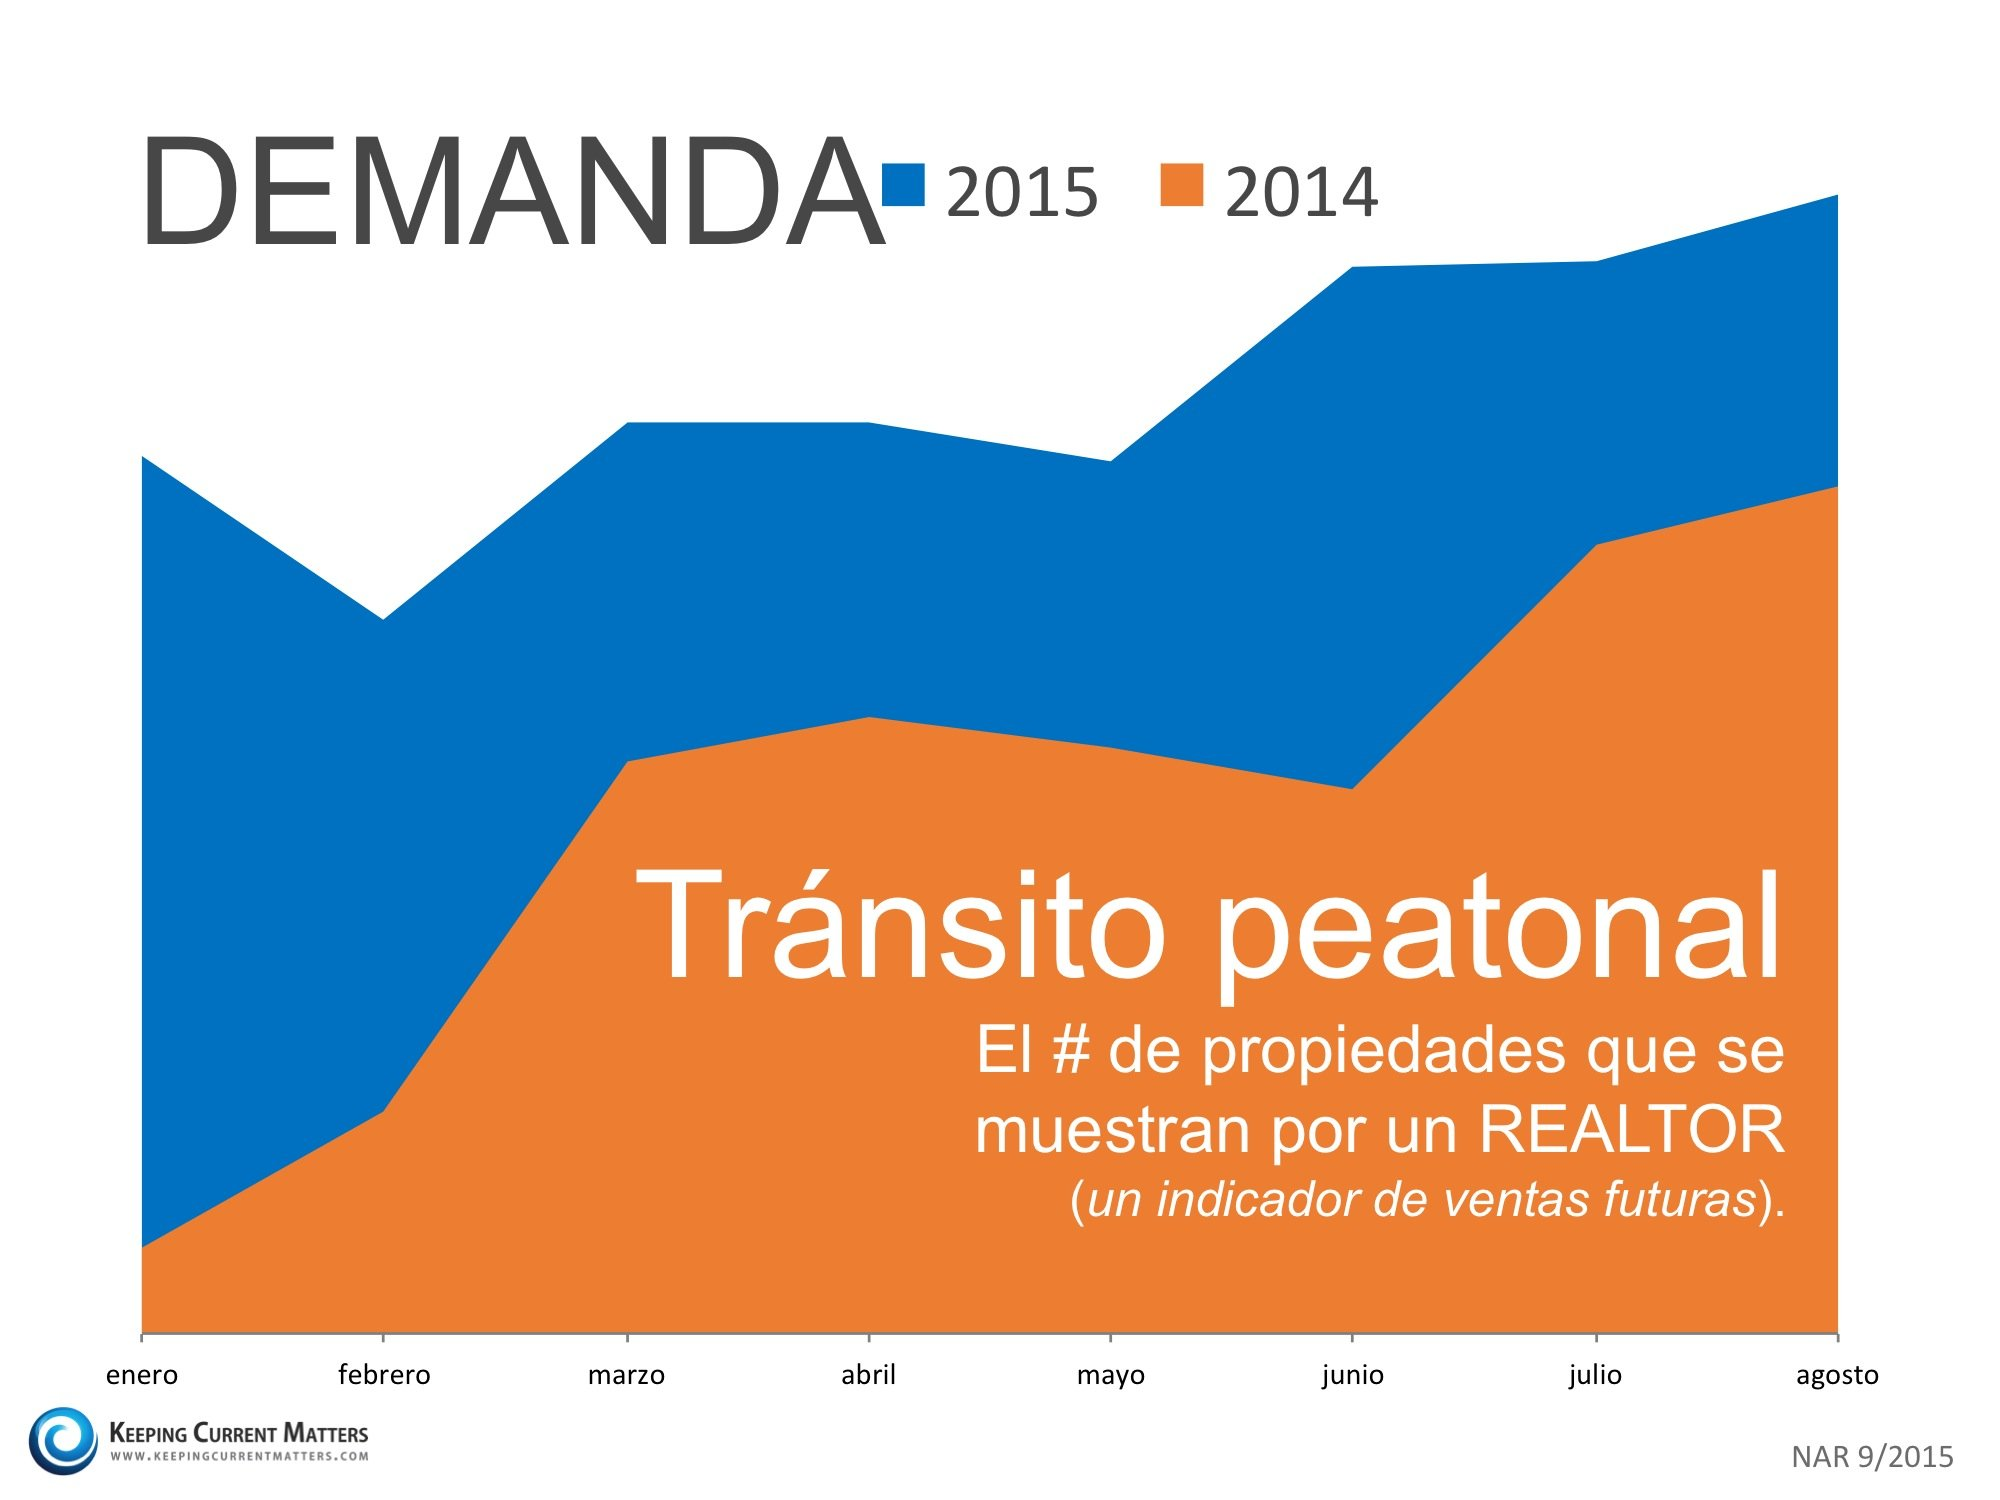 tránsito peatonal año tras año| Keeping Current Matters